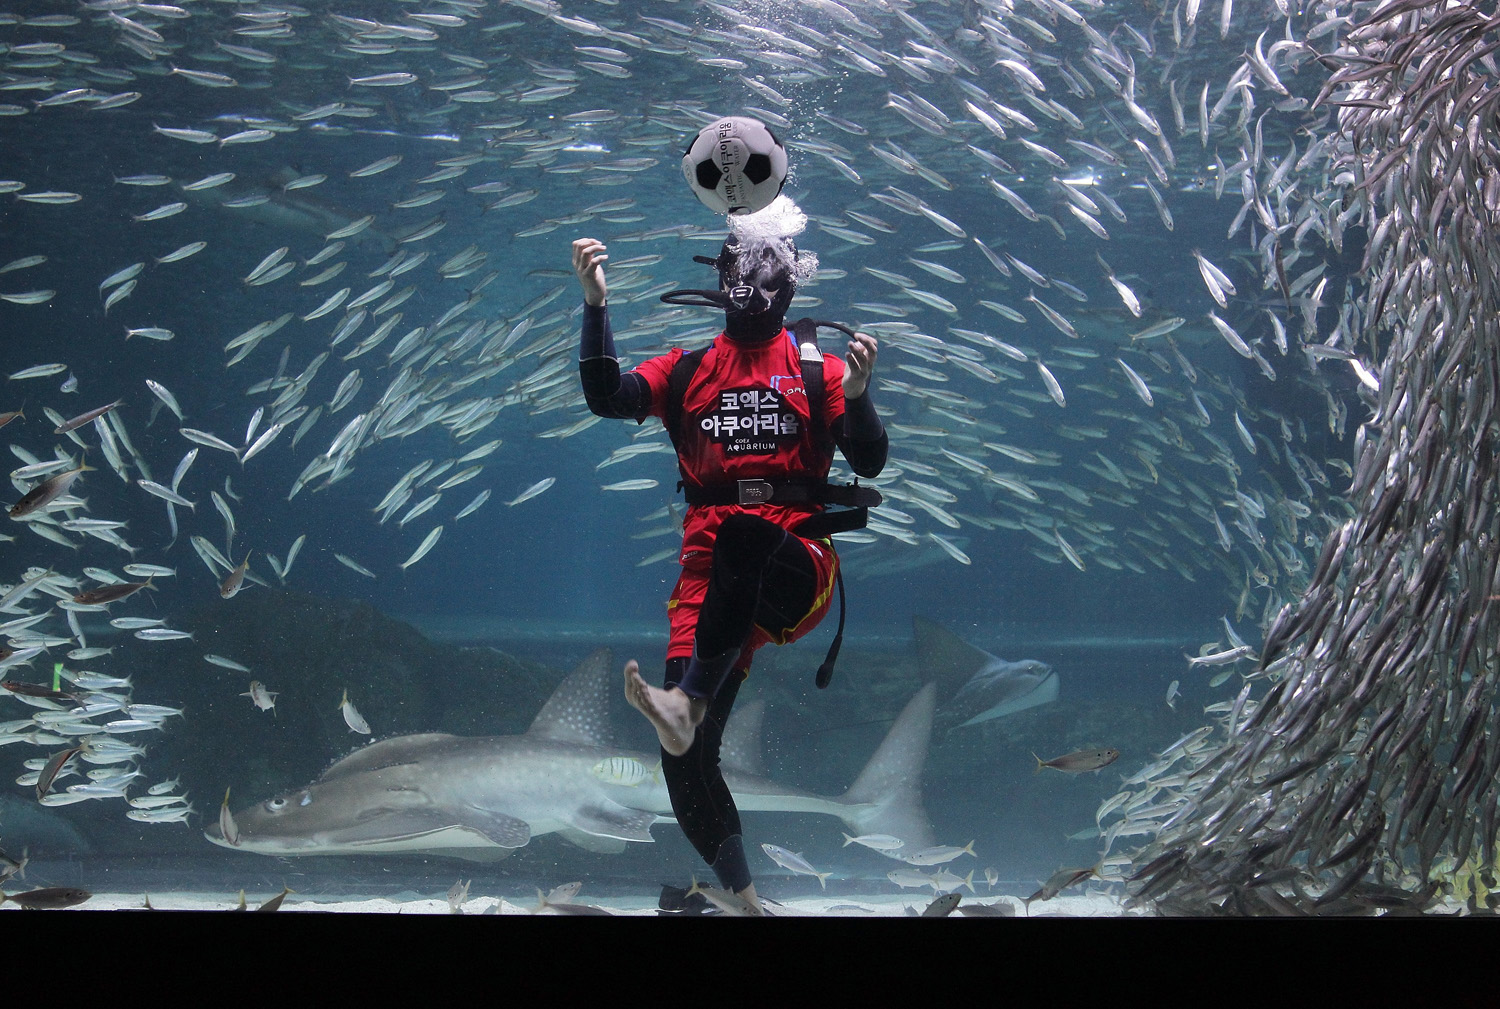 A South Korean diver clad in a soccer uniform swims with sardines for South Korean team's success in the 2014 FIFA World Cup Brazil at the Coex Aquarium in Seoul on June 9, 2014.